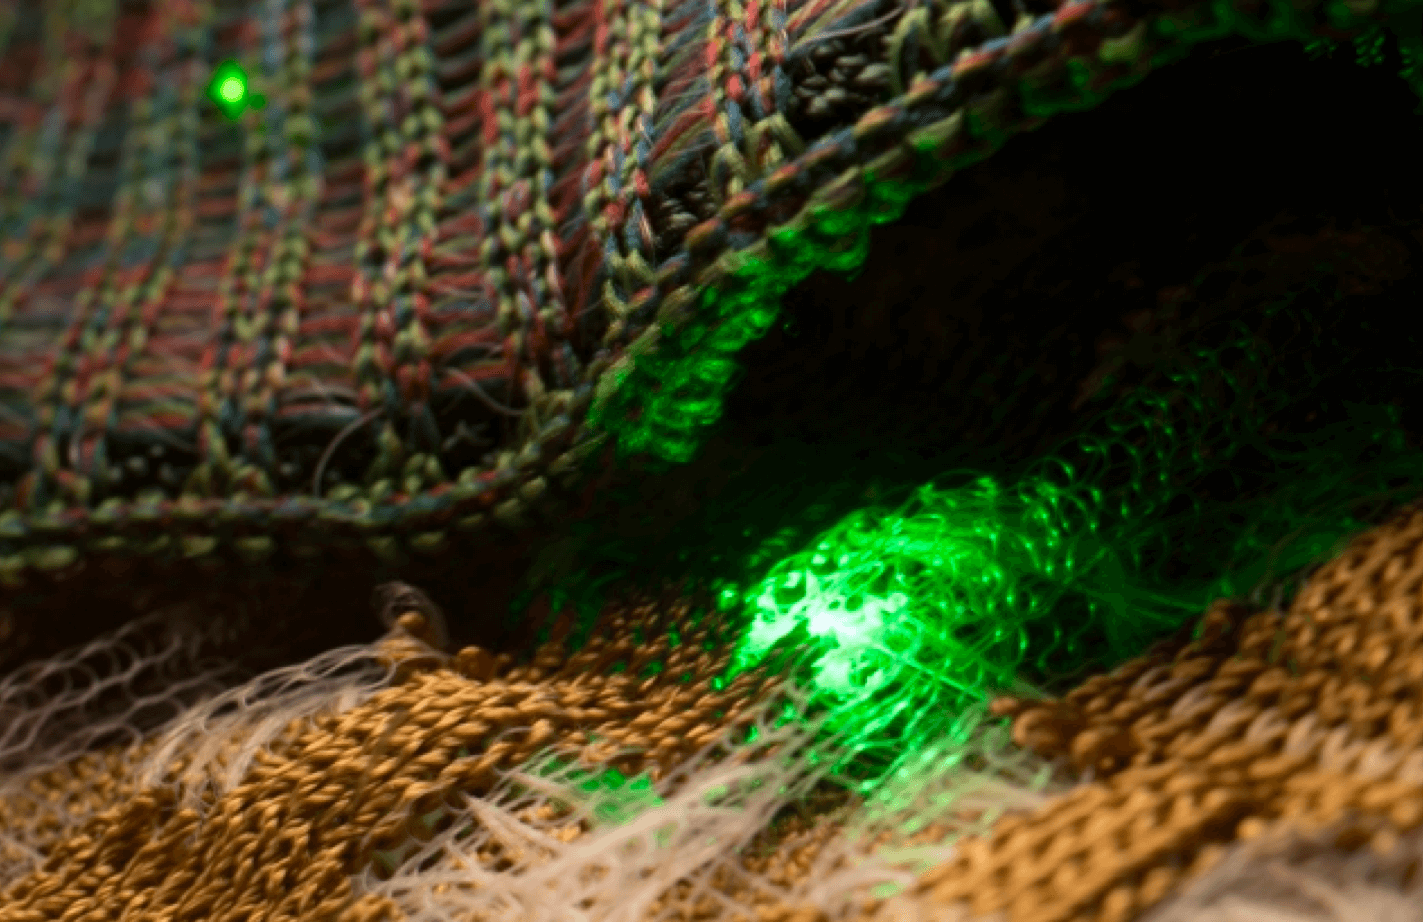 Thread and needle with a green light